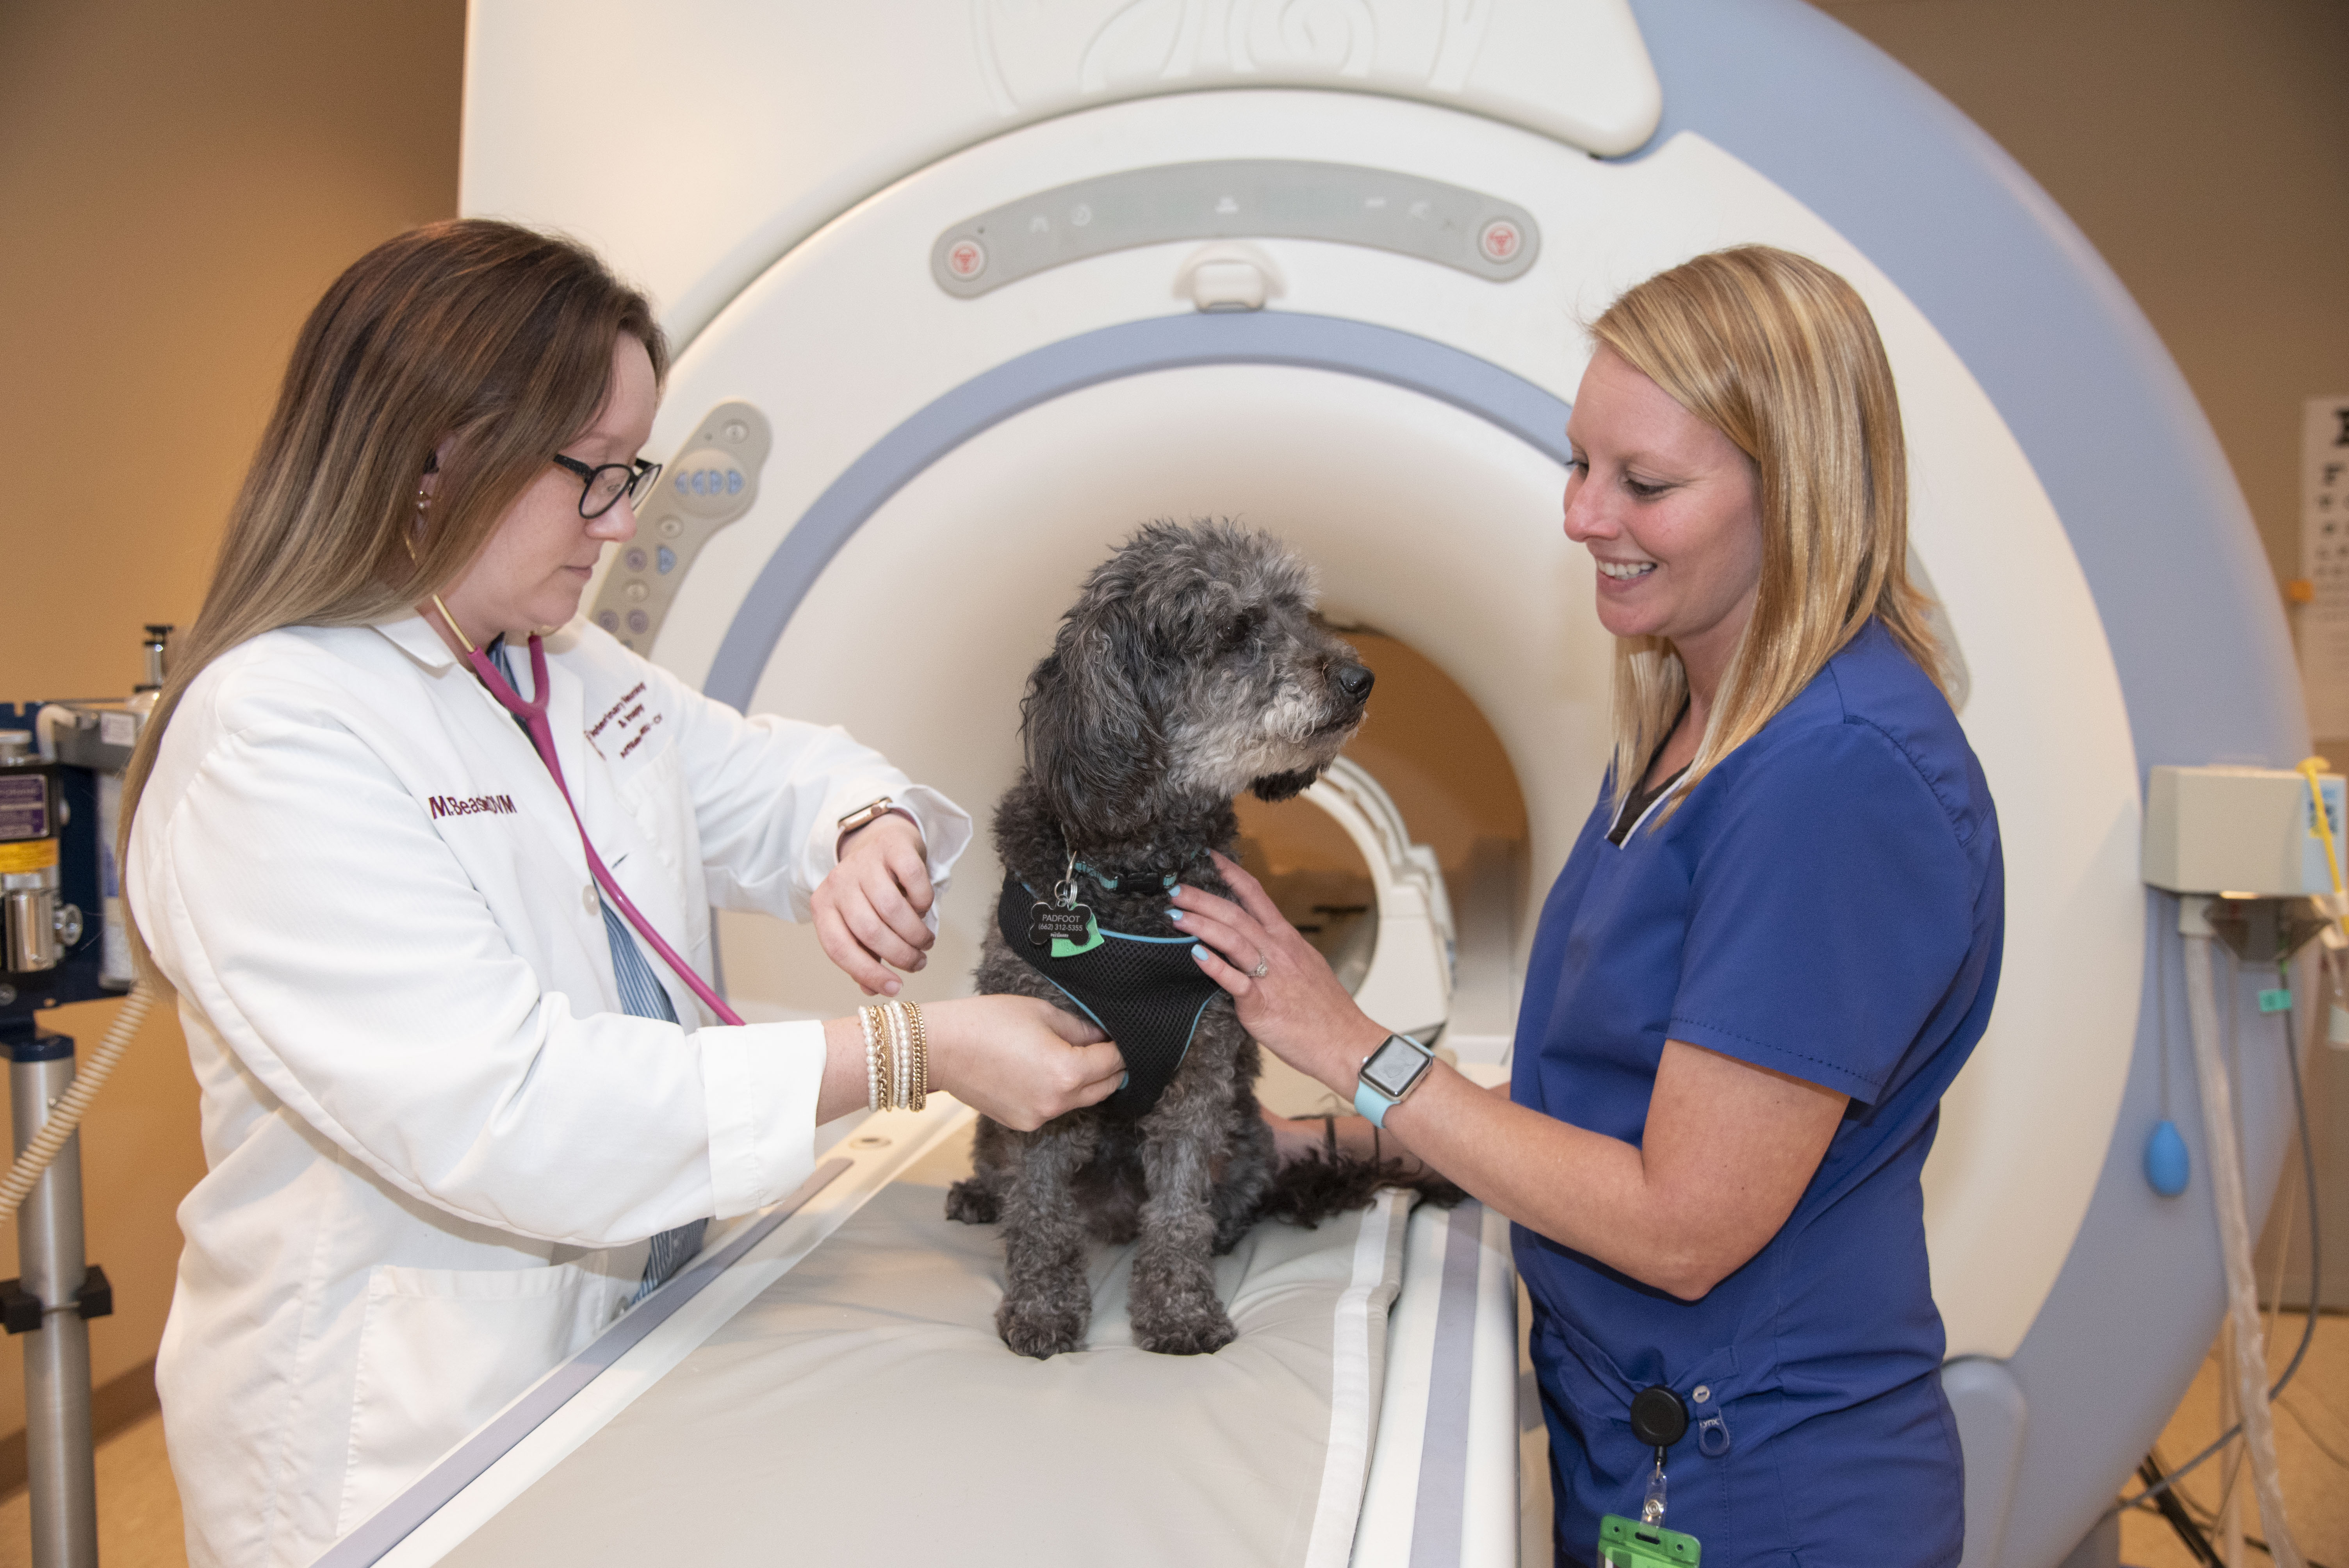 A veterinarian and a technician examine a dog after an MRI